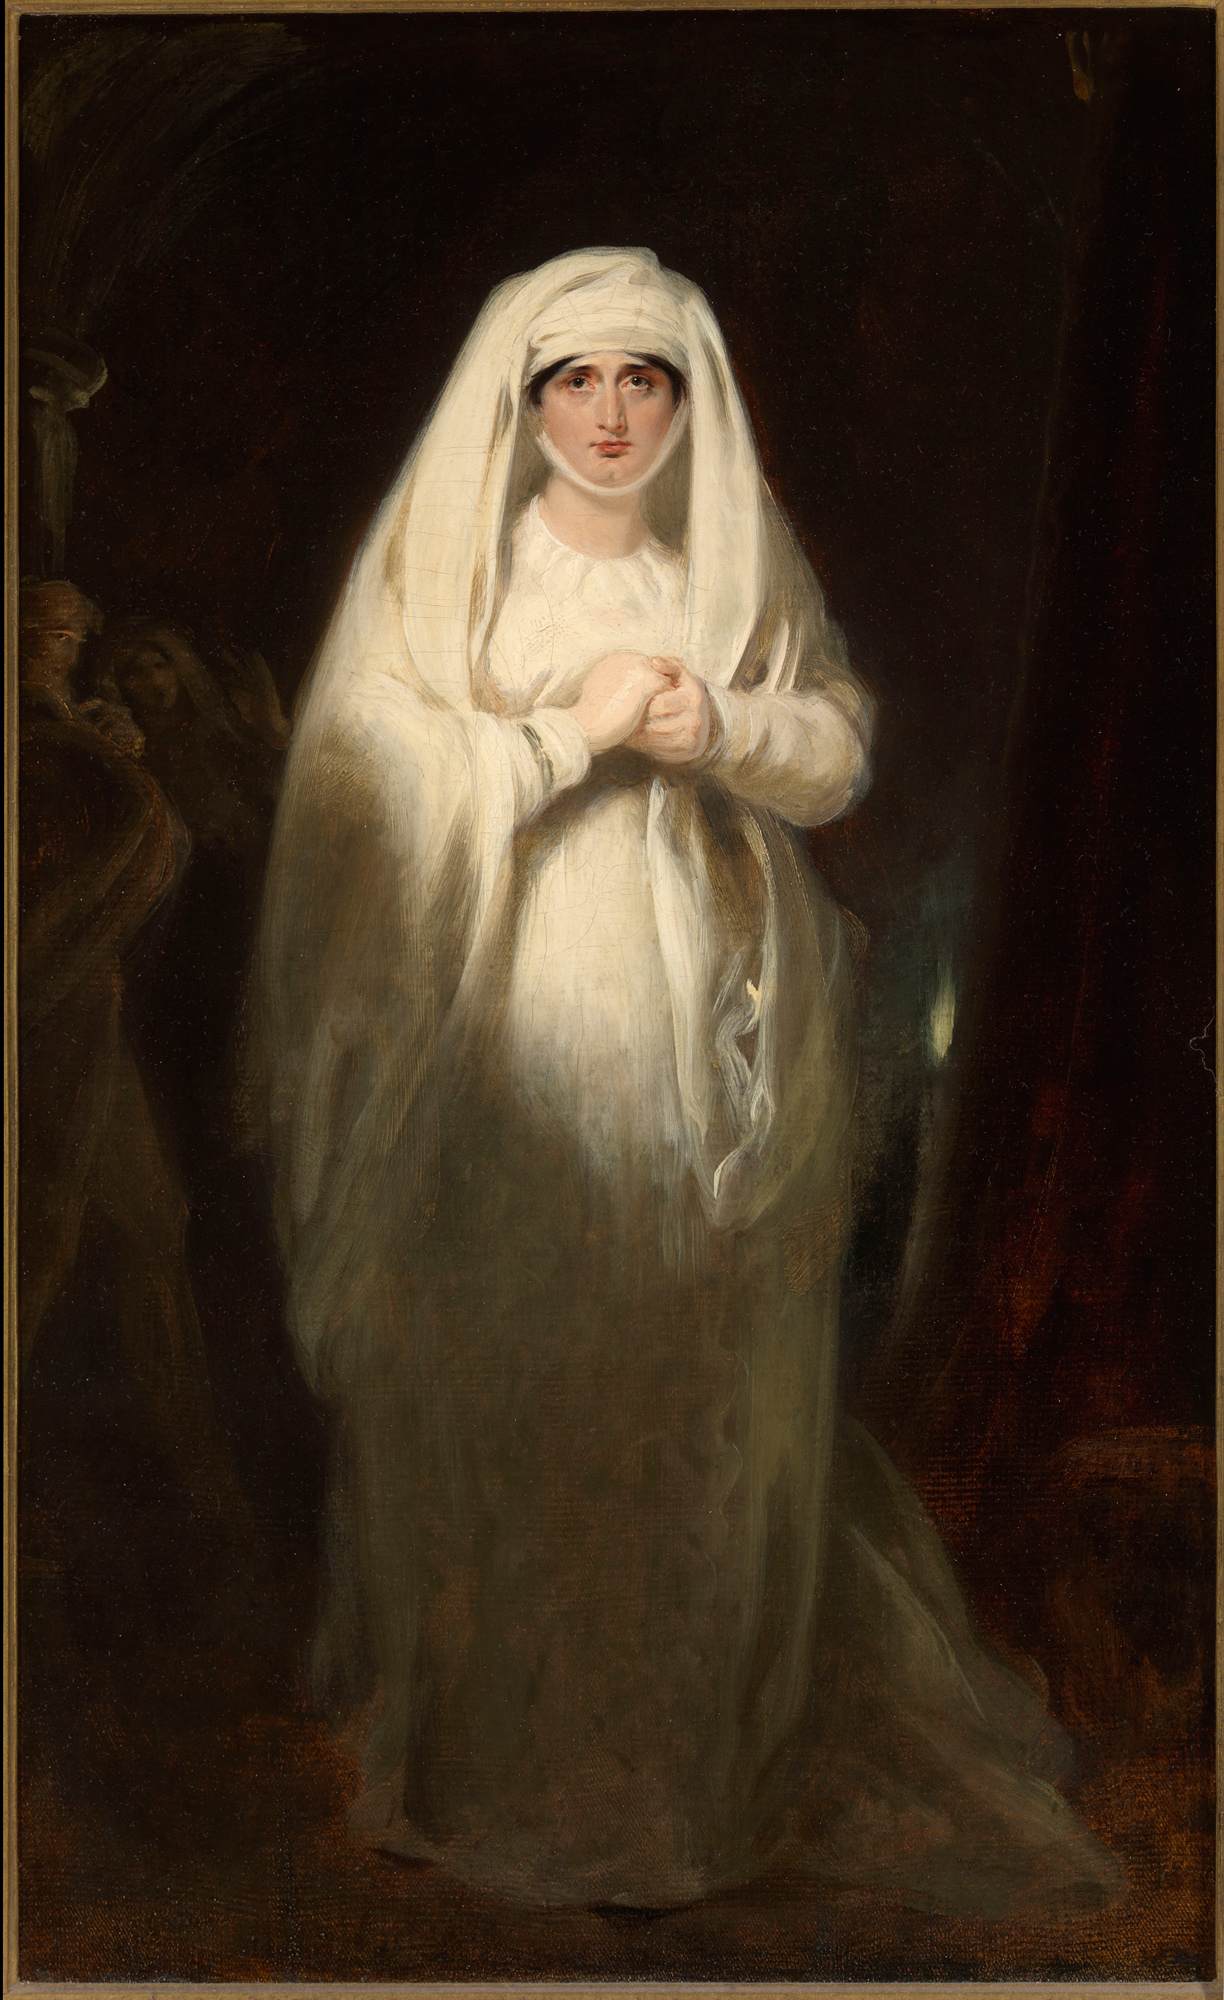 Portrait of Sarah Siddons as Lady Macbeth by George Henry Harlow